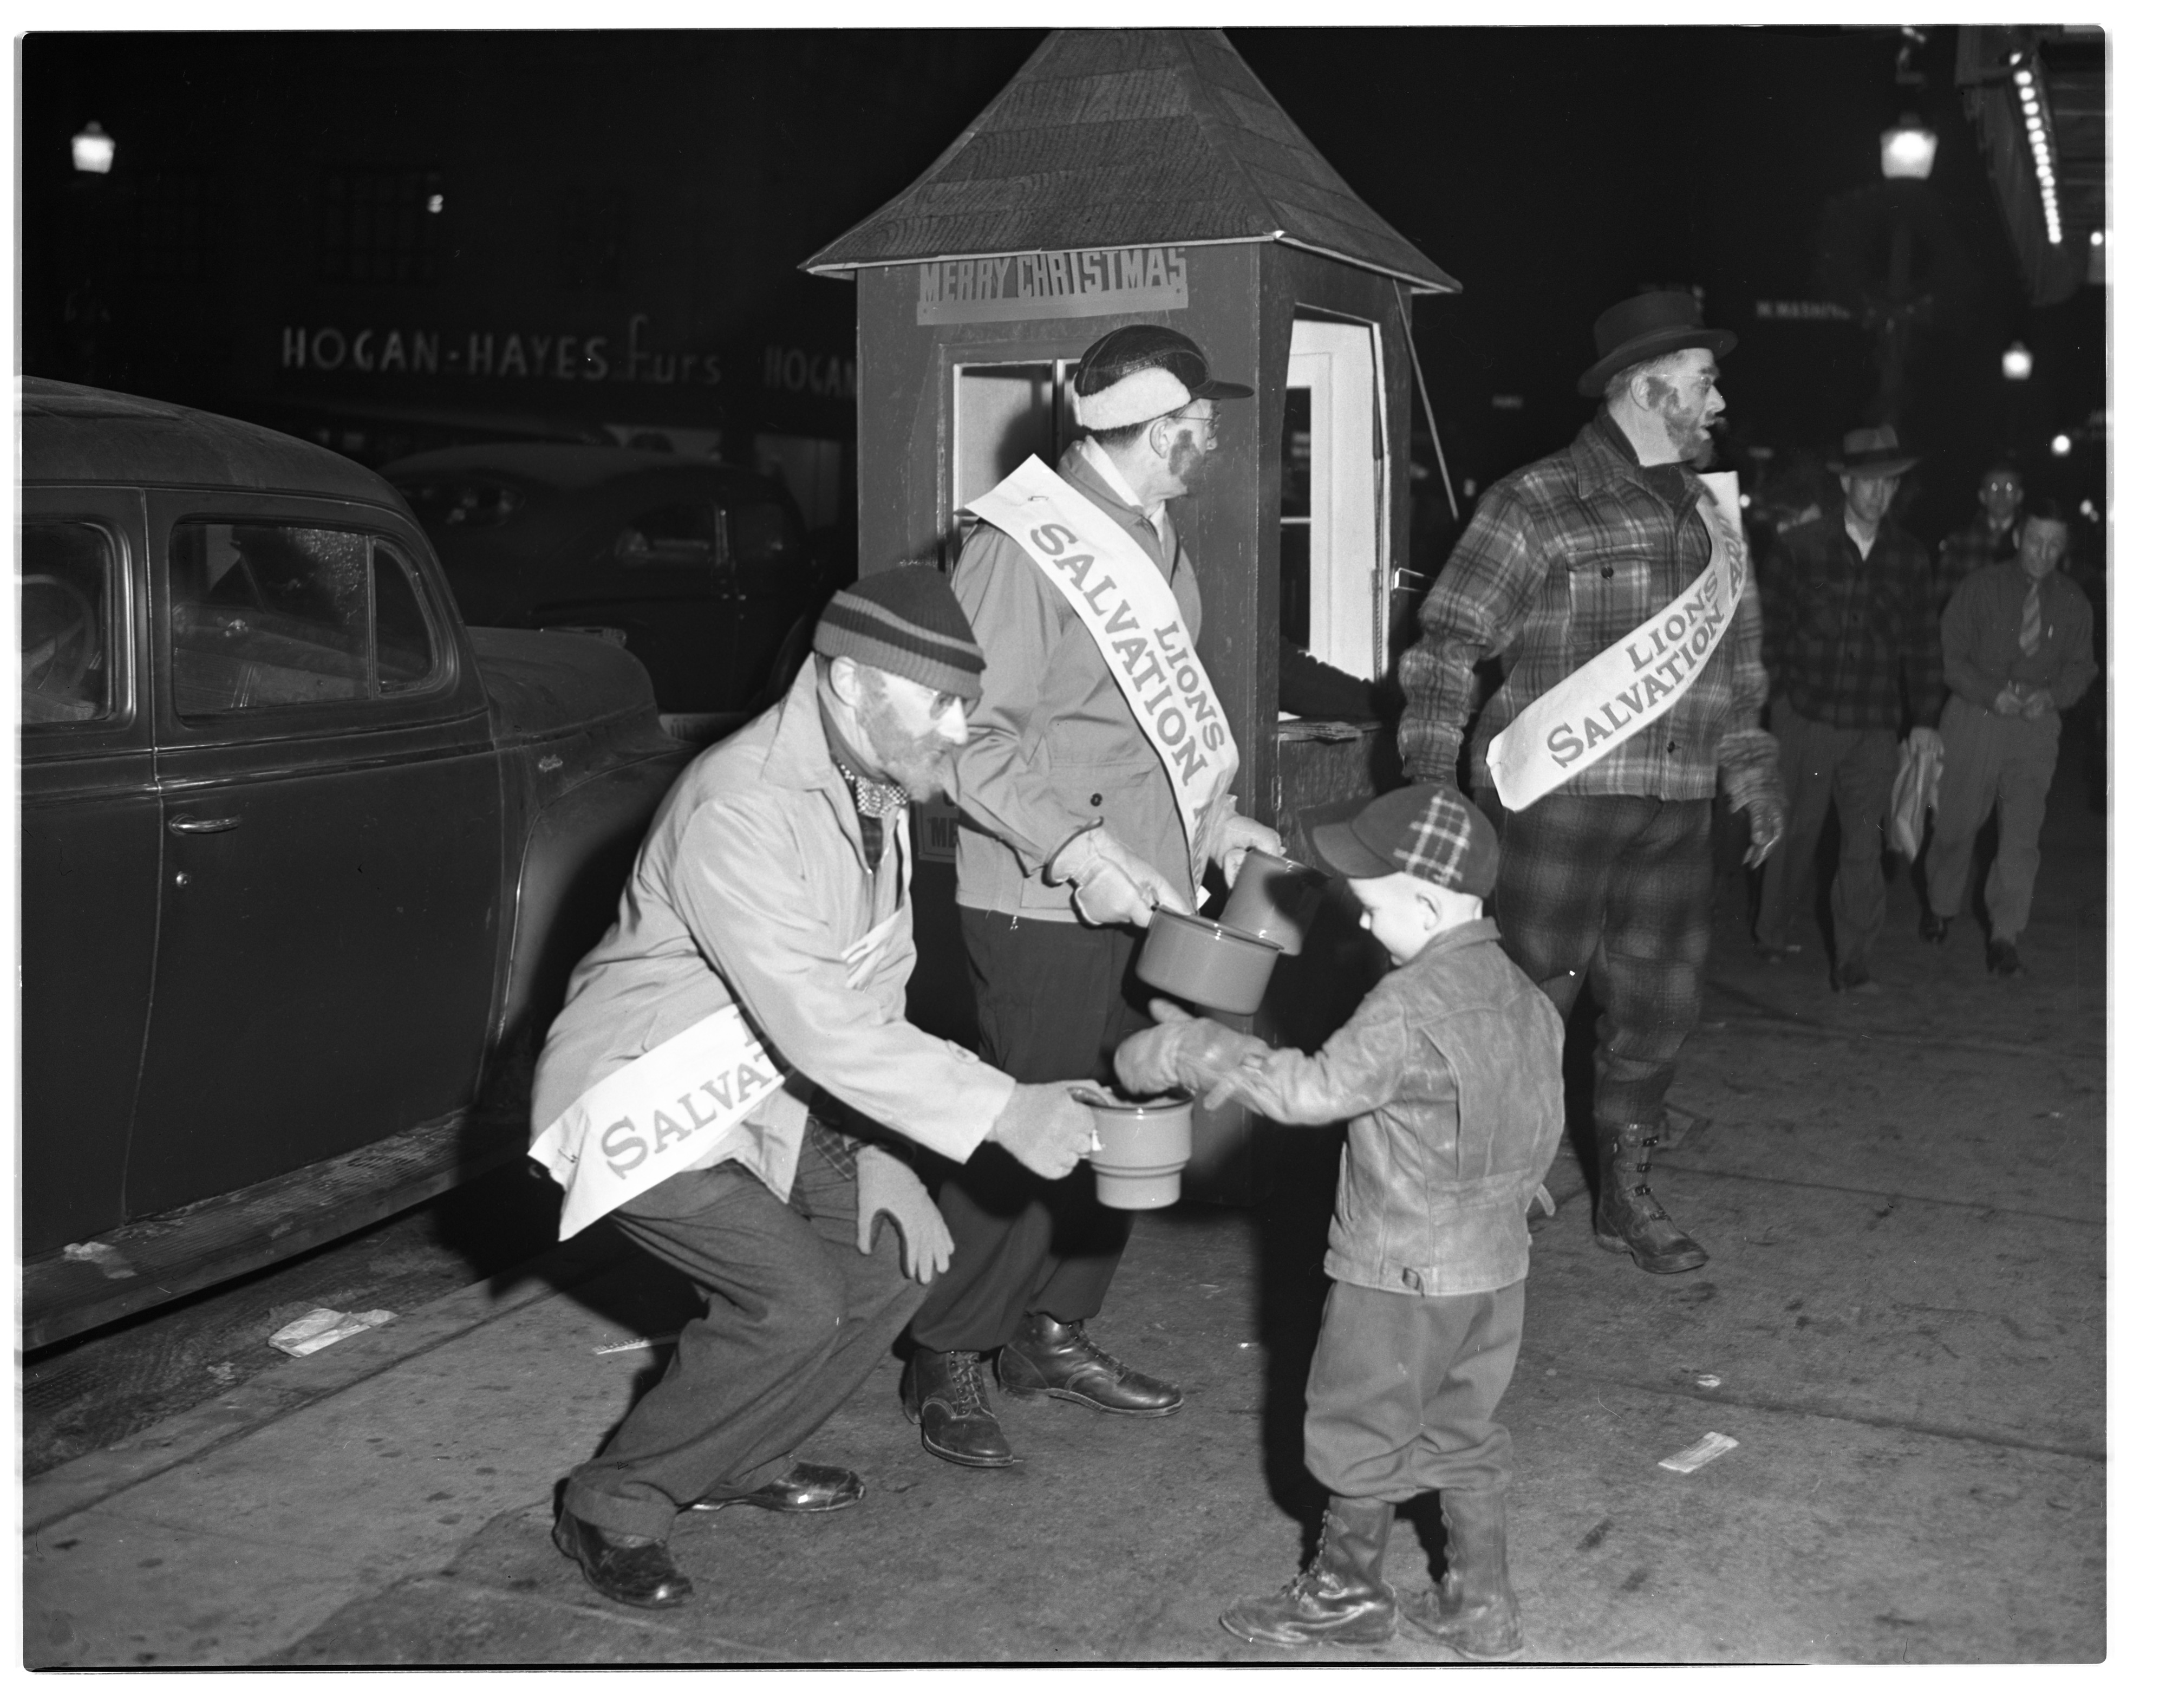 'Lumberjack' Lions Club Collect For Salvation Army, December 1947 image